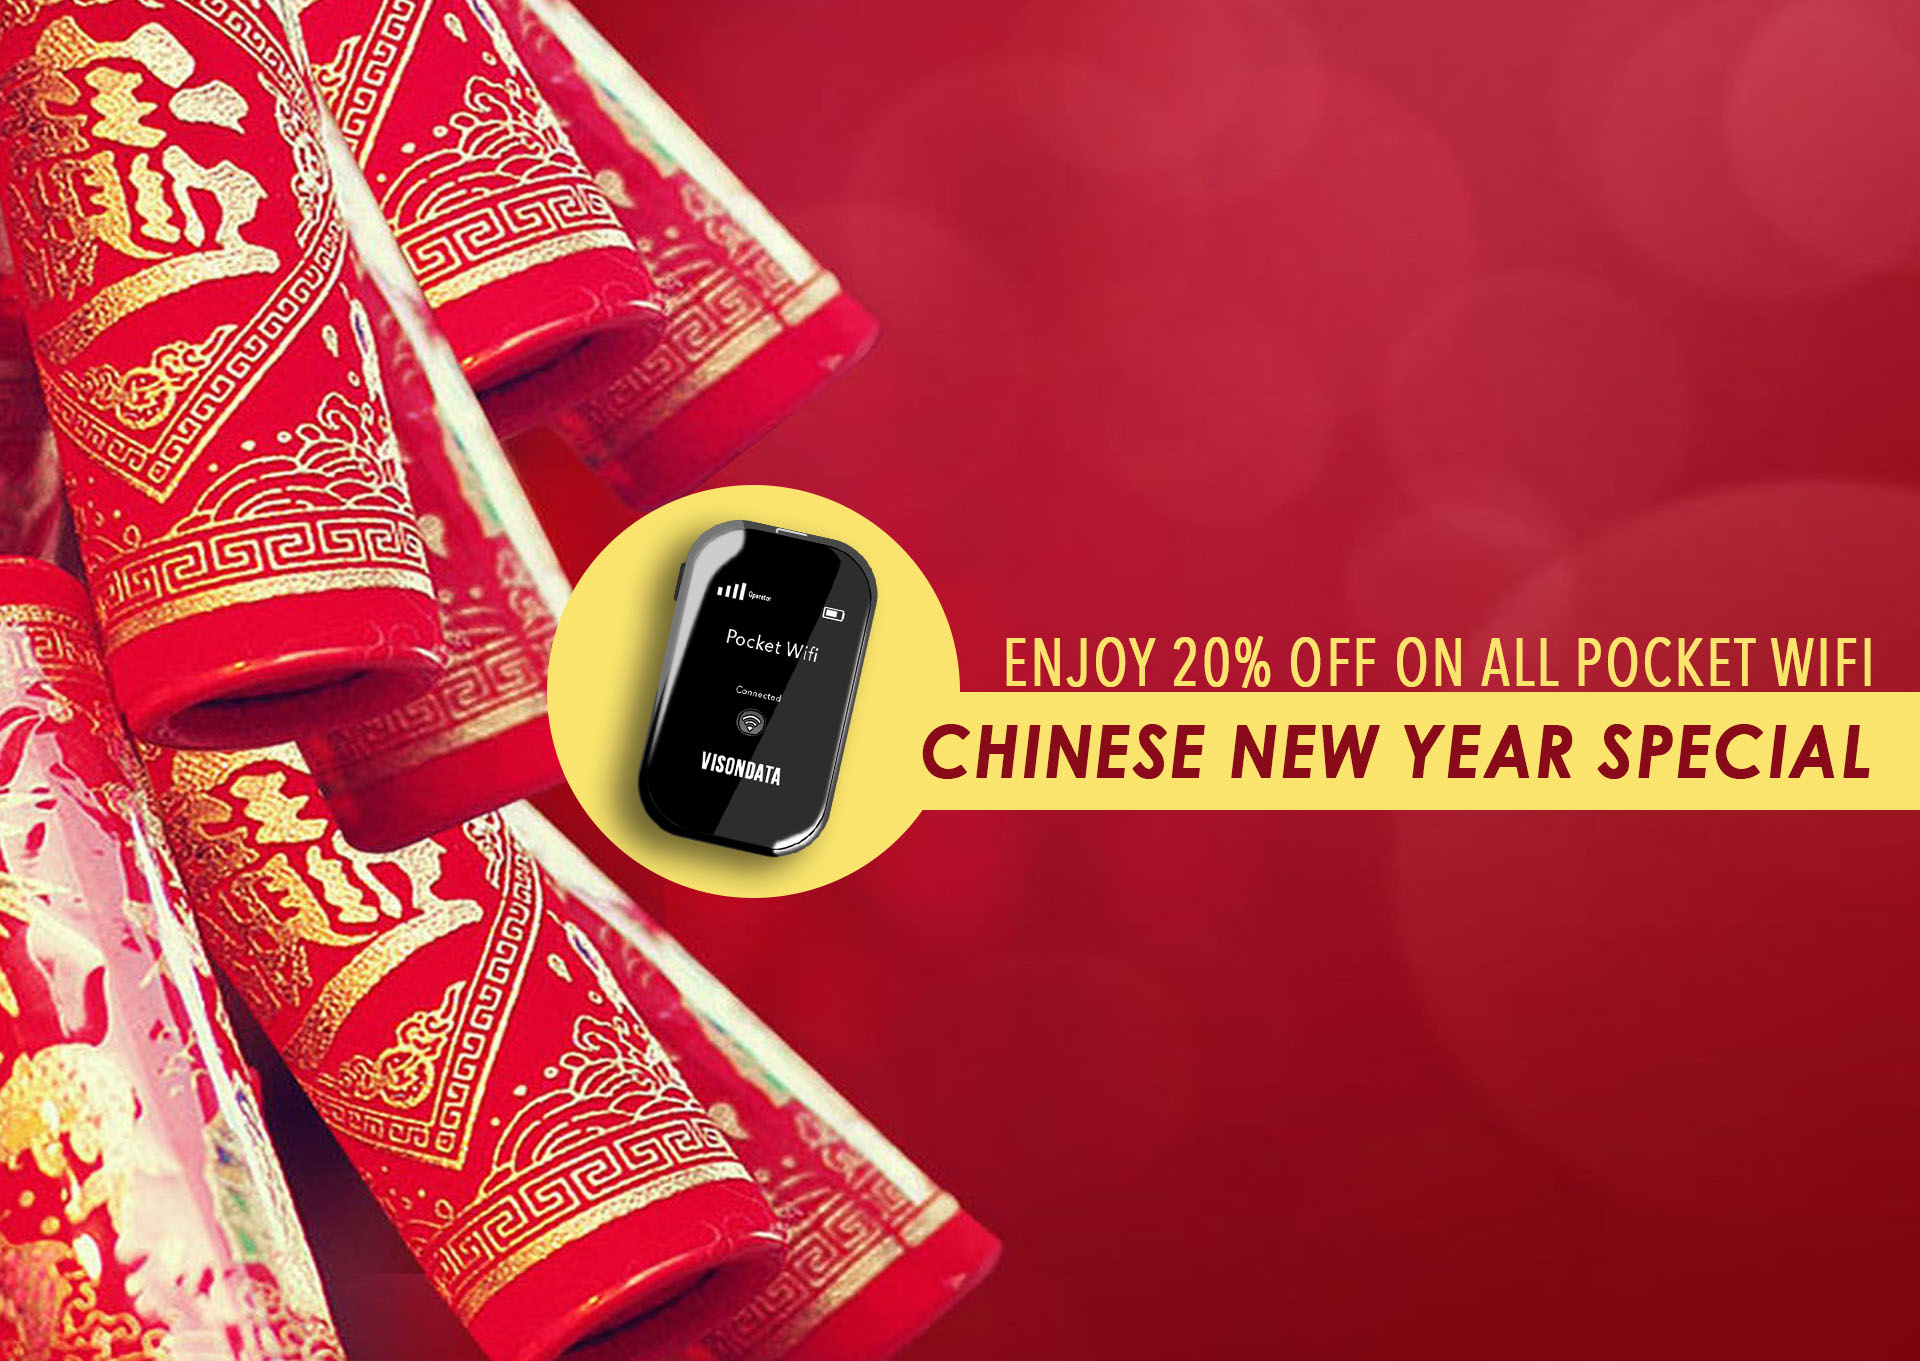 visondata mobile wifi overseas router chinese new year promotion